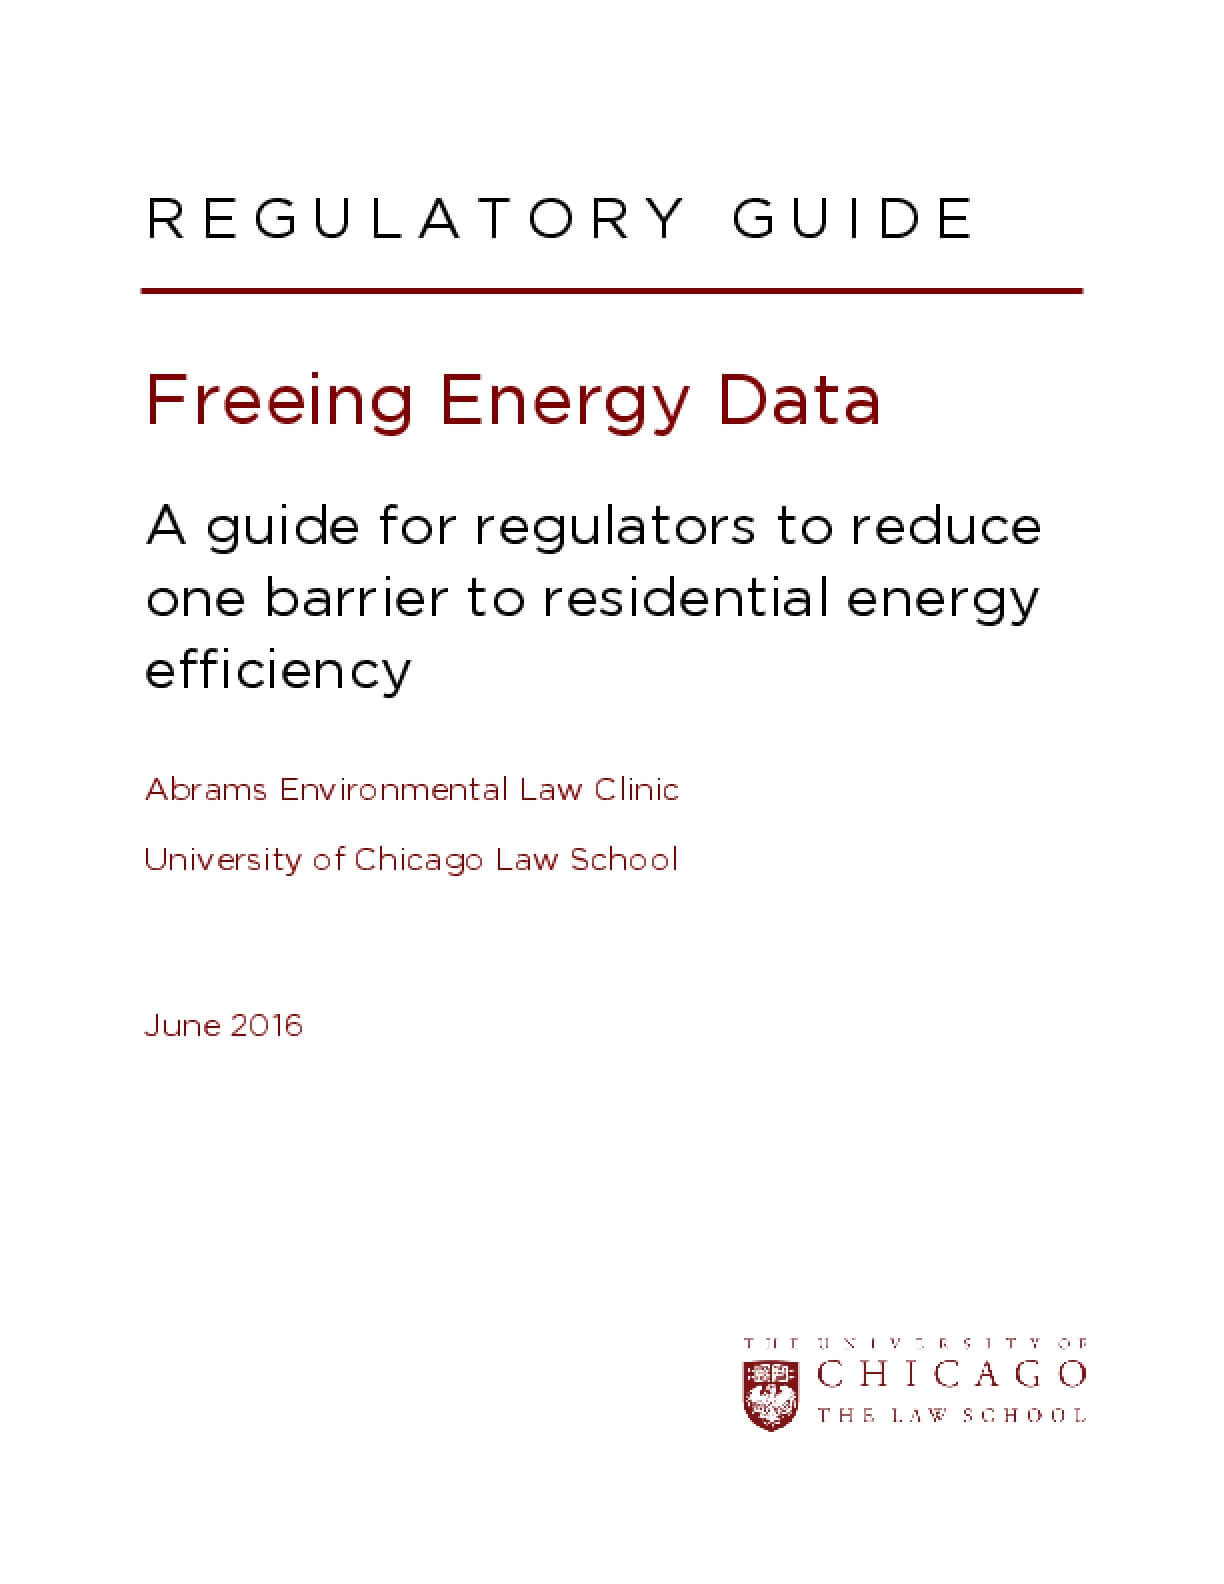 Freeing Energy Data: A Guide for Regulators to Reduce One Barrier to Residential Energy Efficiency